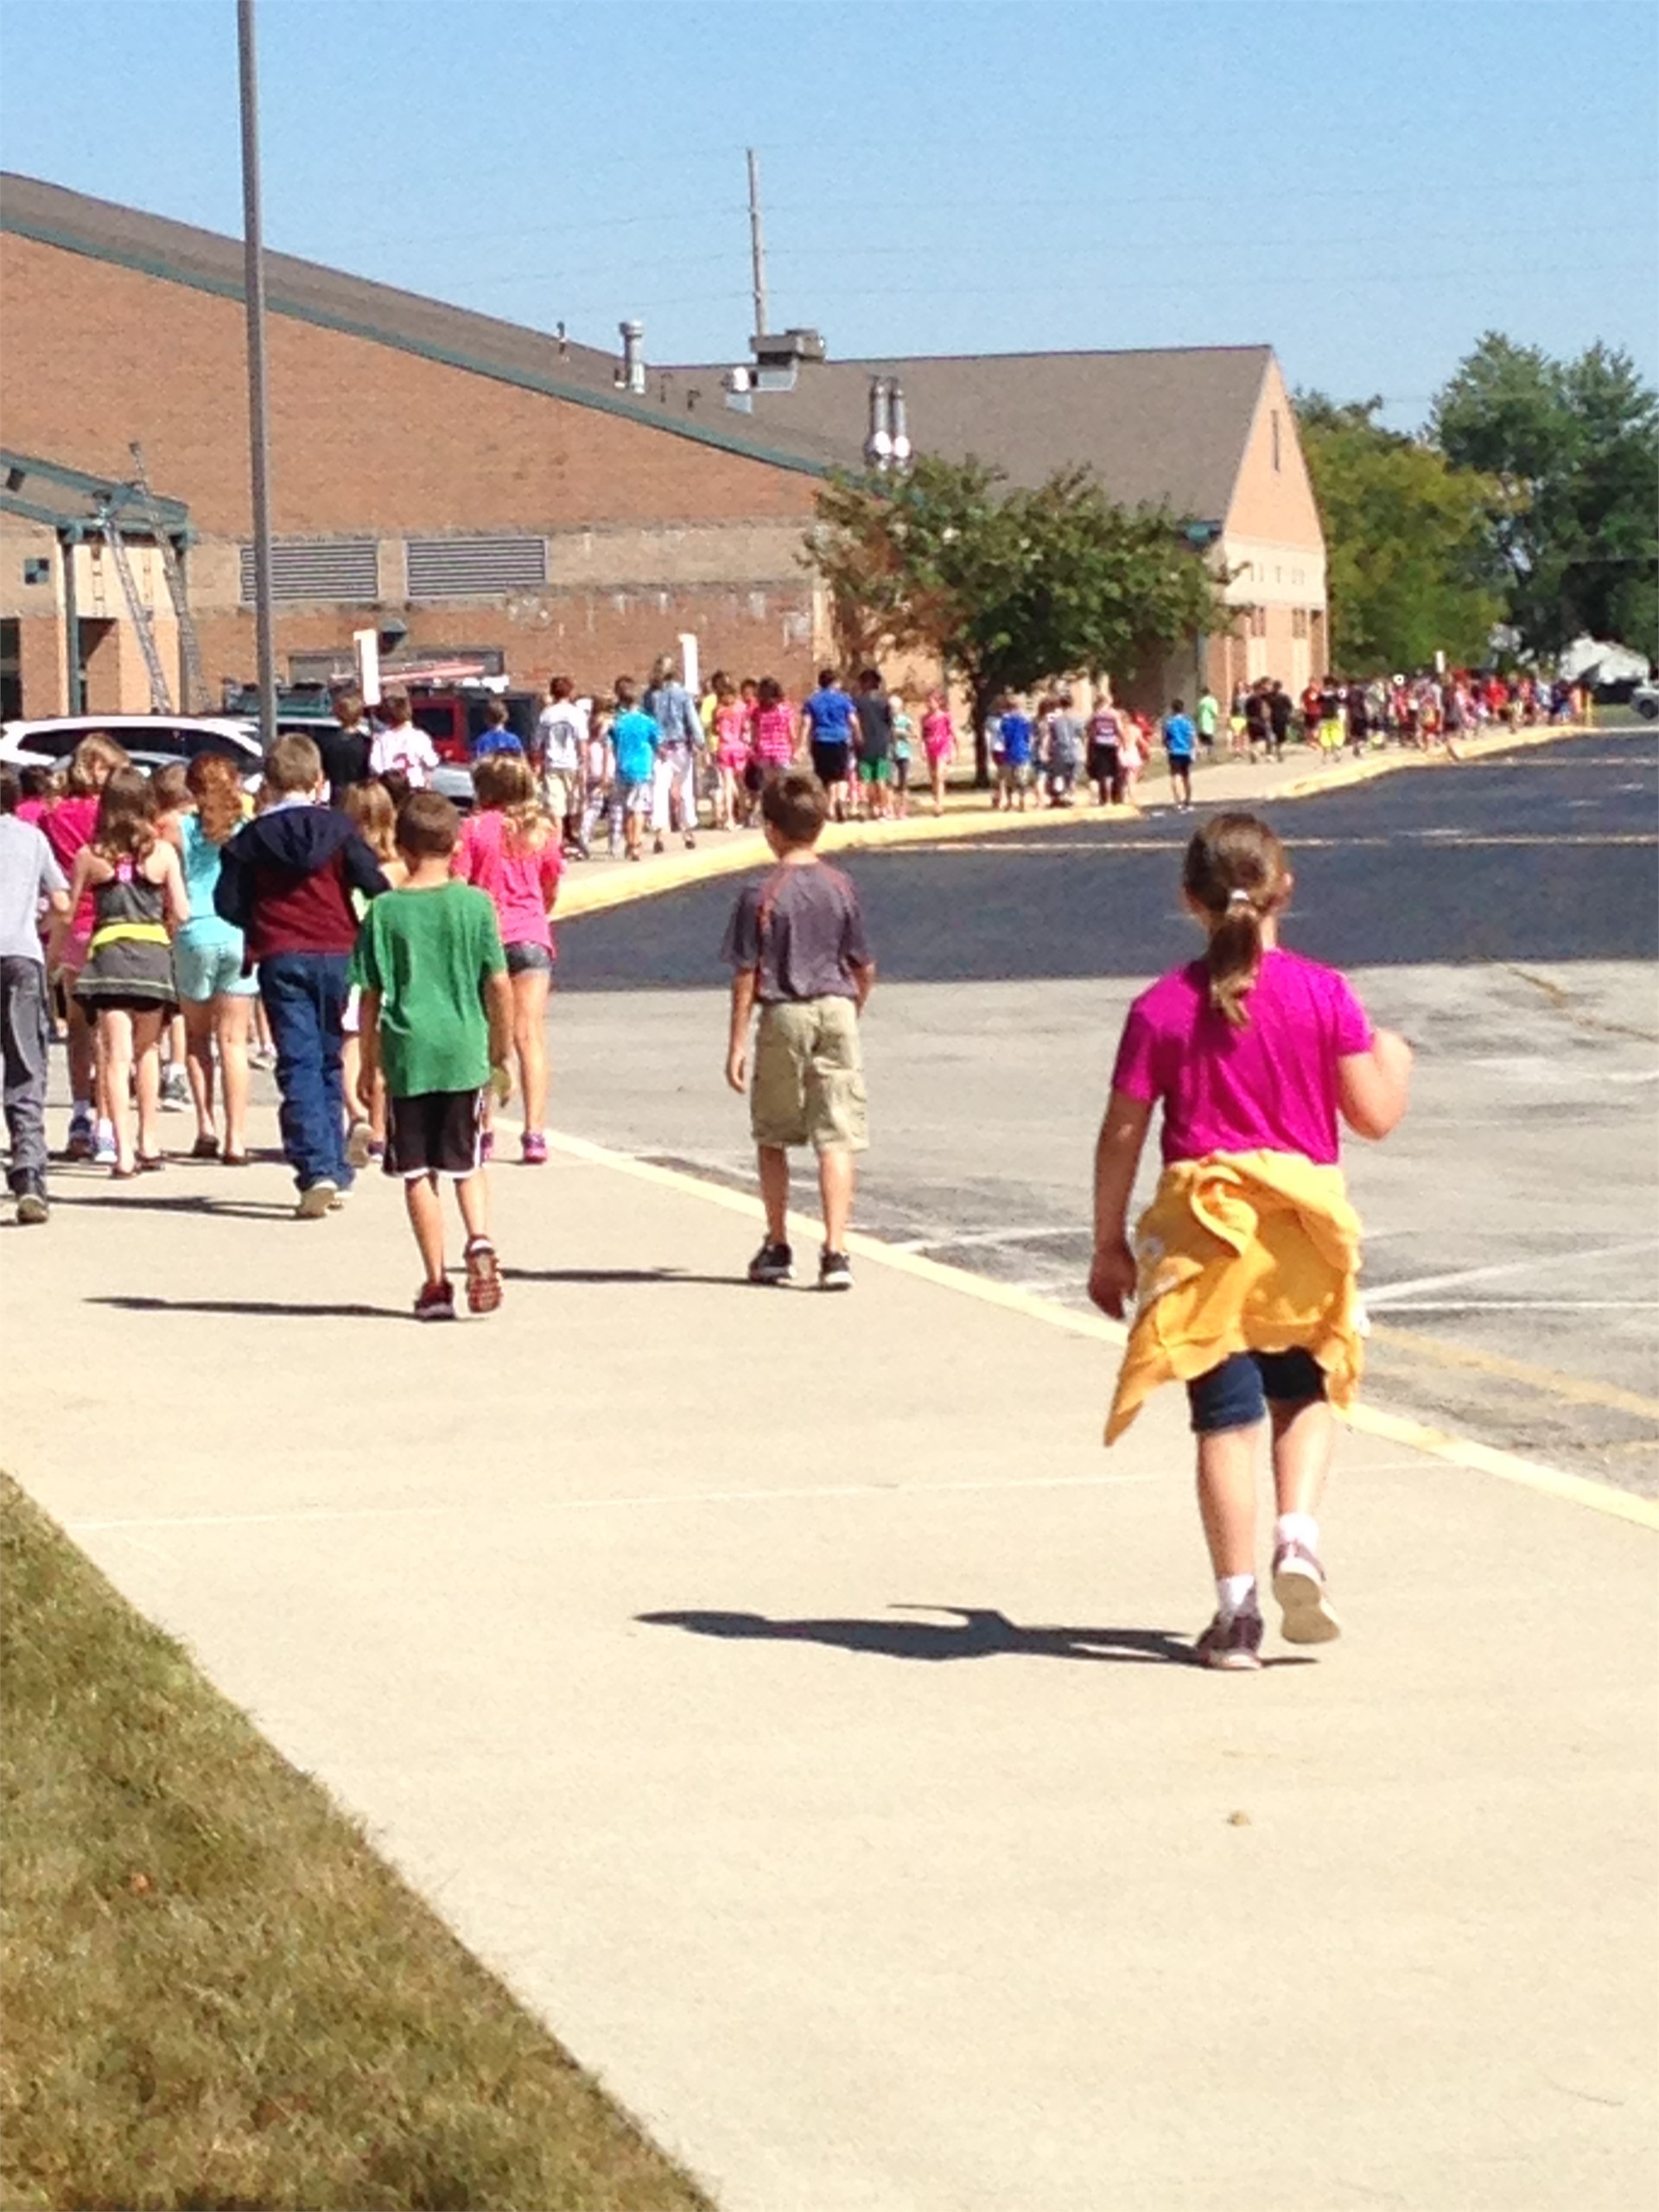 Students running/walking during Mileage Club, which is held every Thursday afternoon during recess.